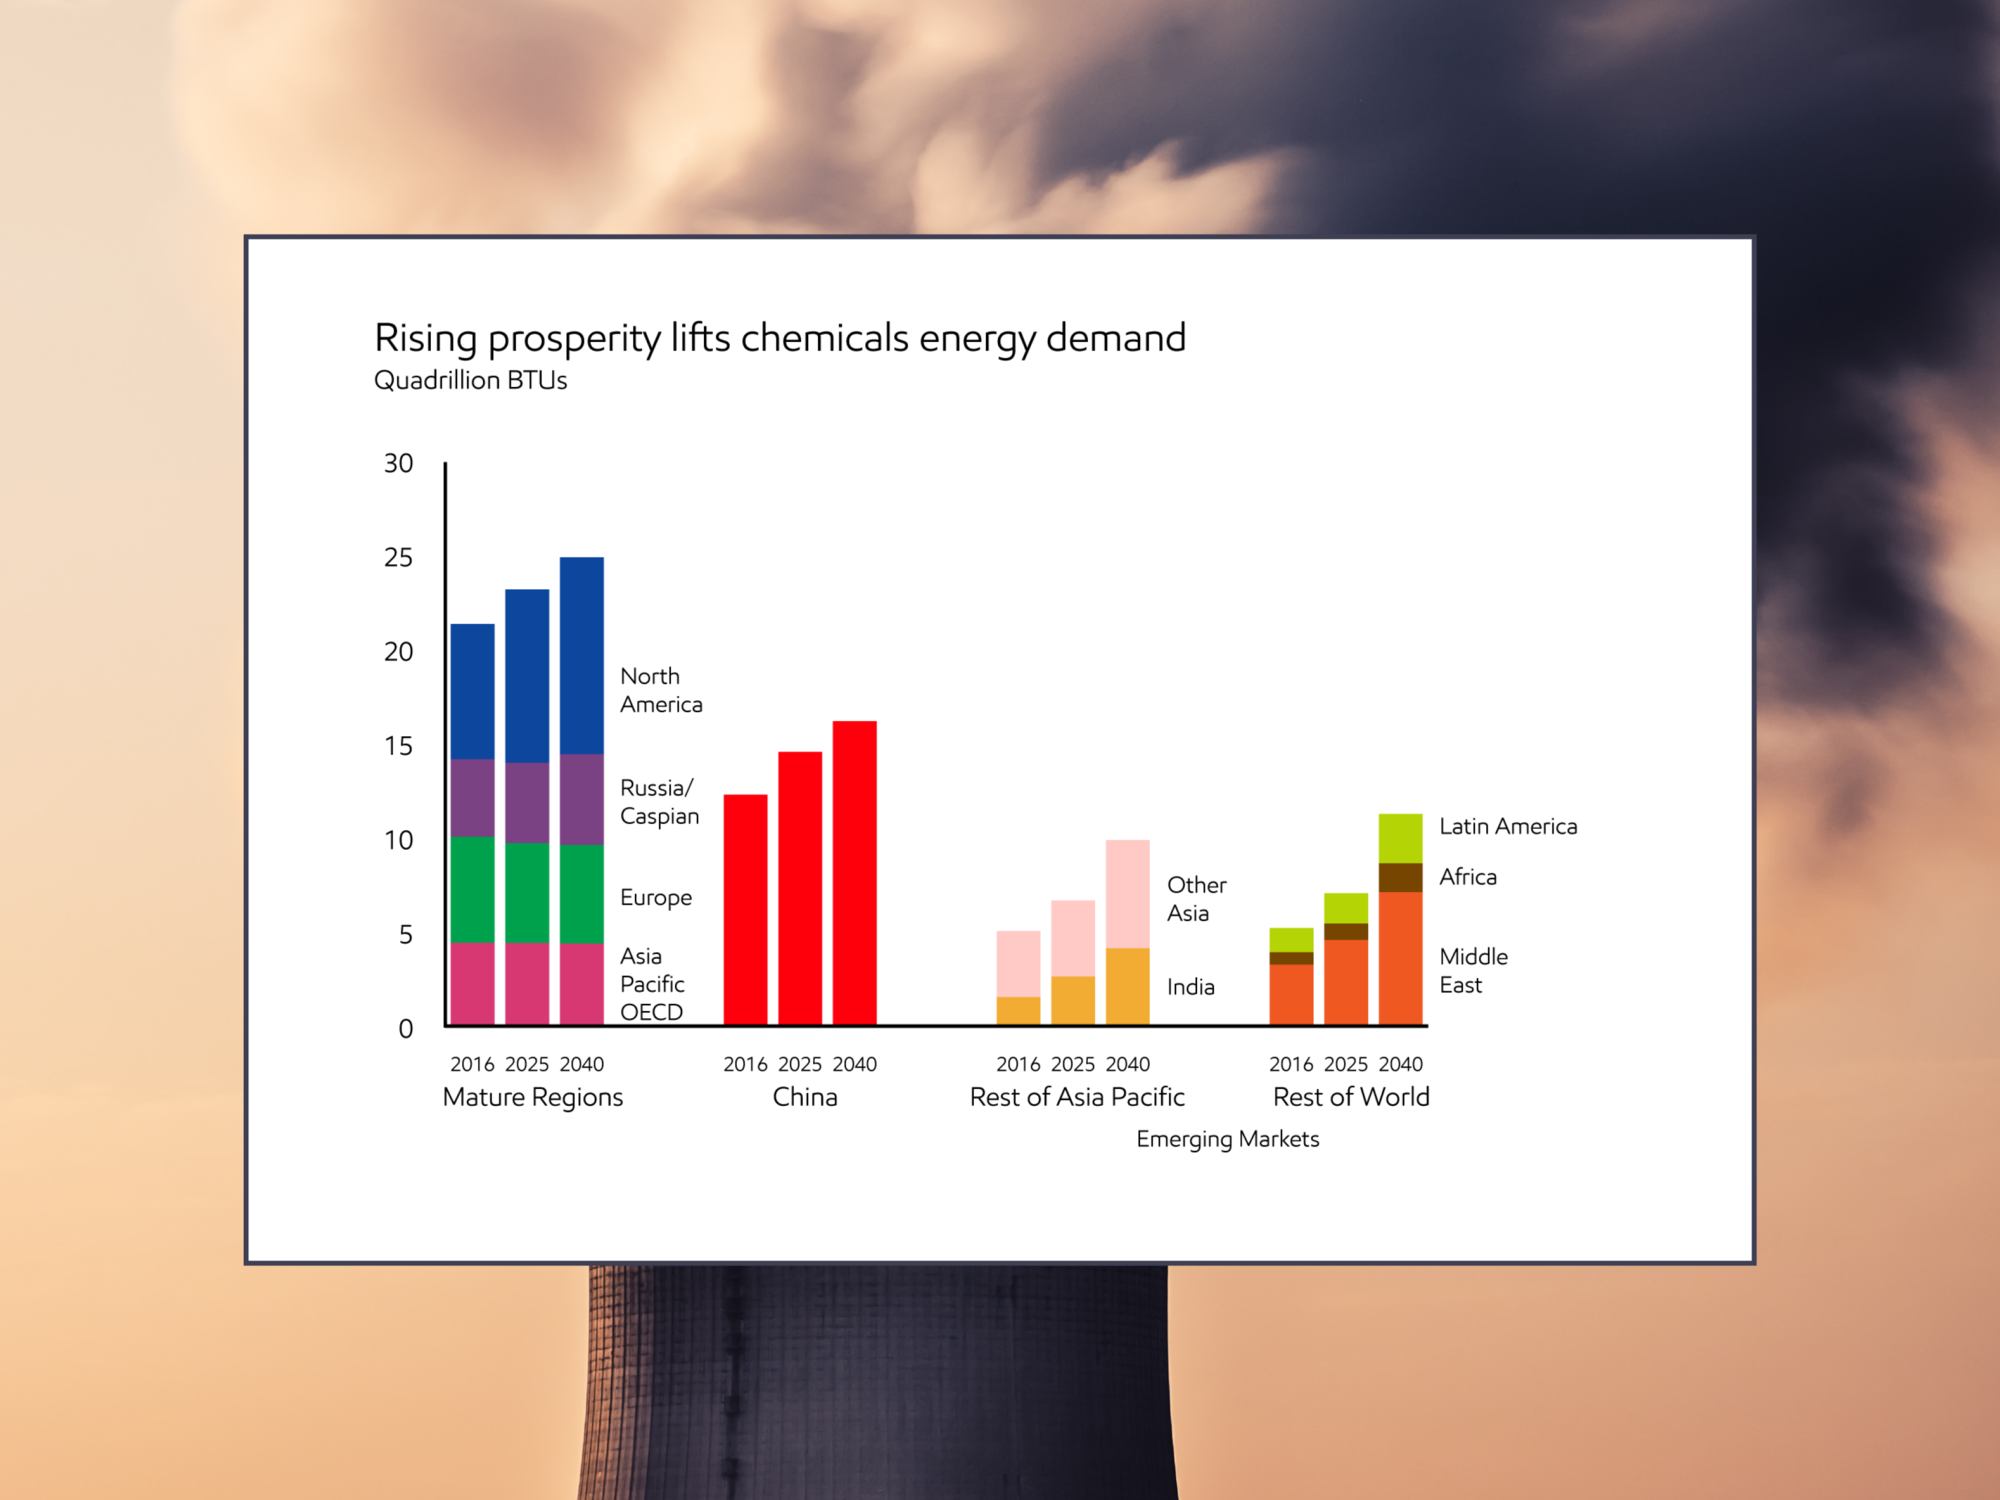 Rising prosperity lifts chemicals energy demand (Source: ExxonMobil)